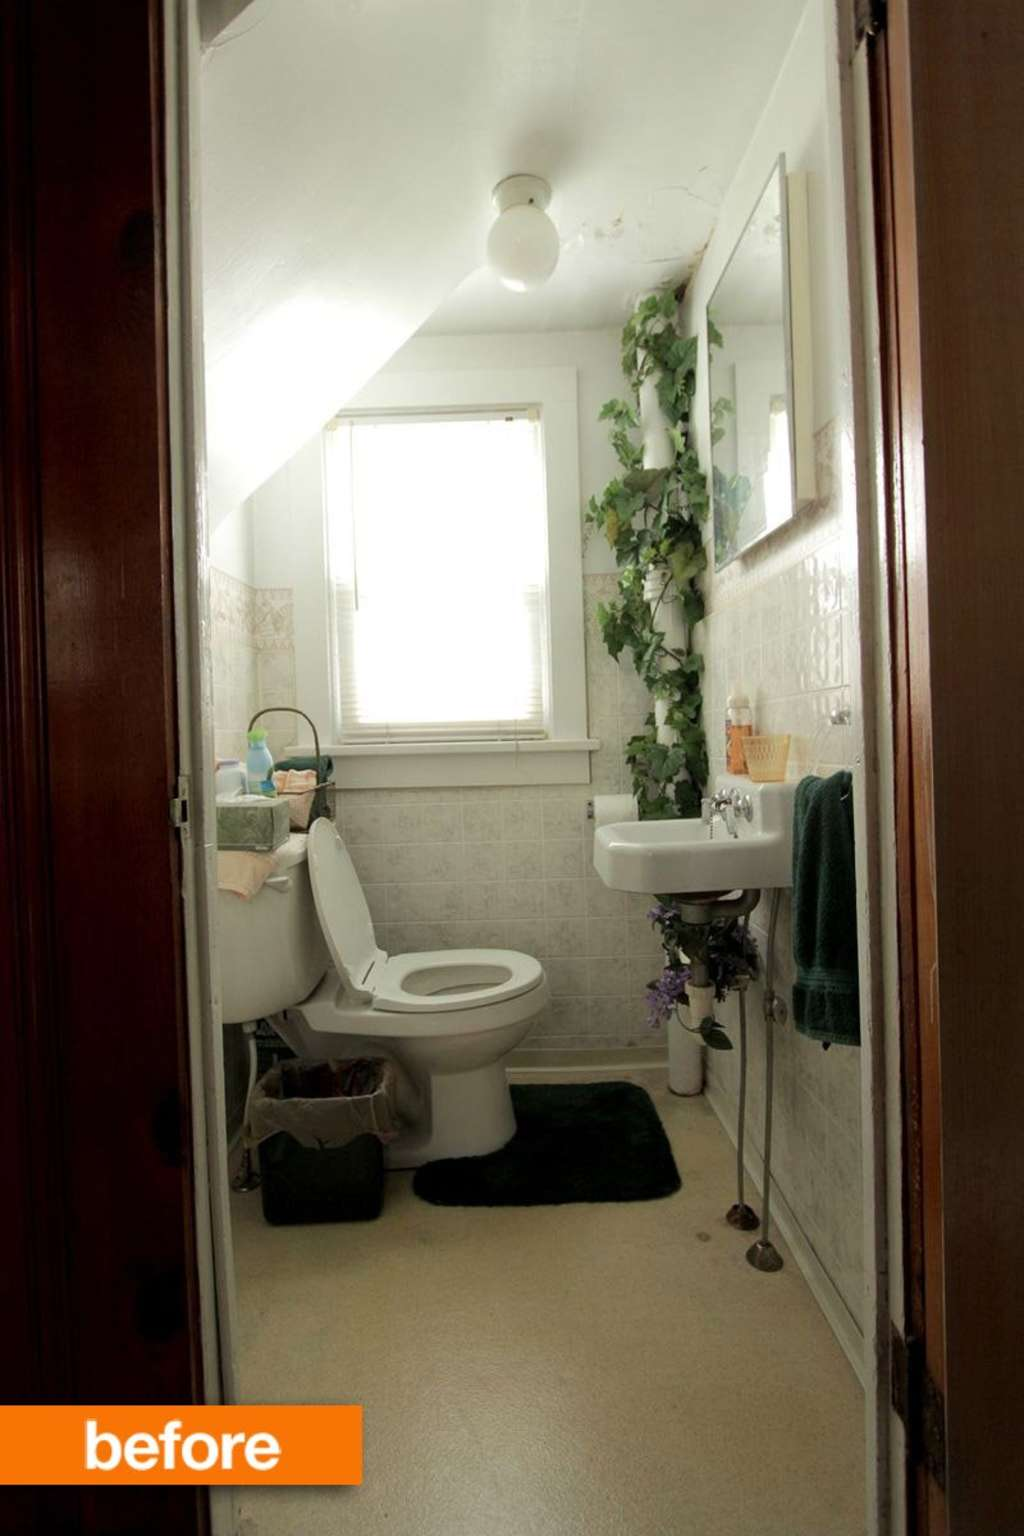 Before & After: A Tiny Bathroom Transformed